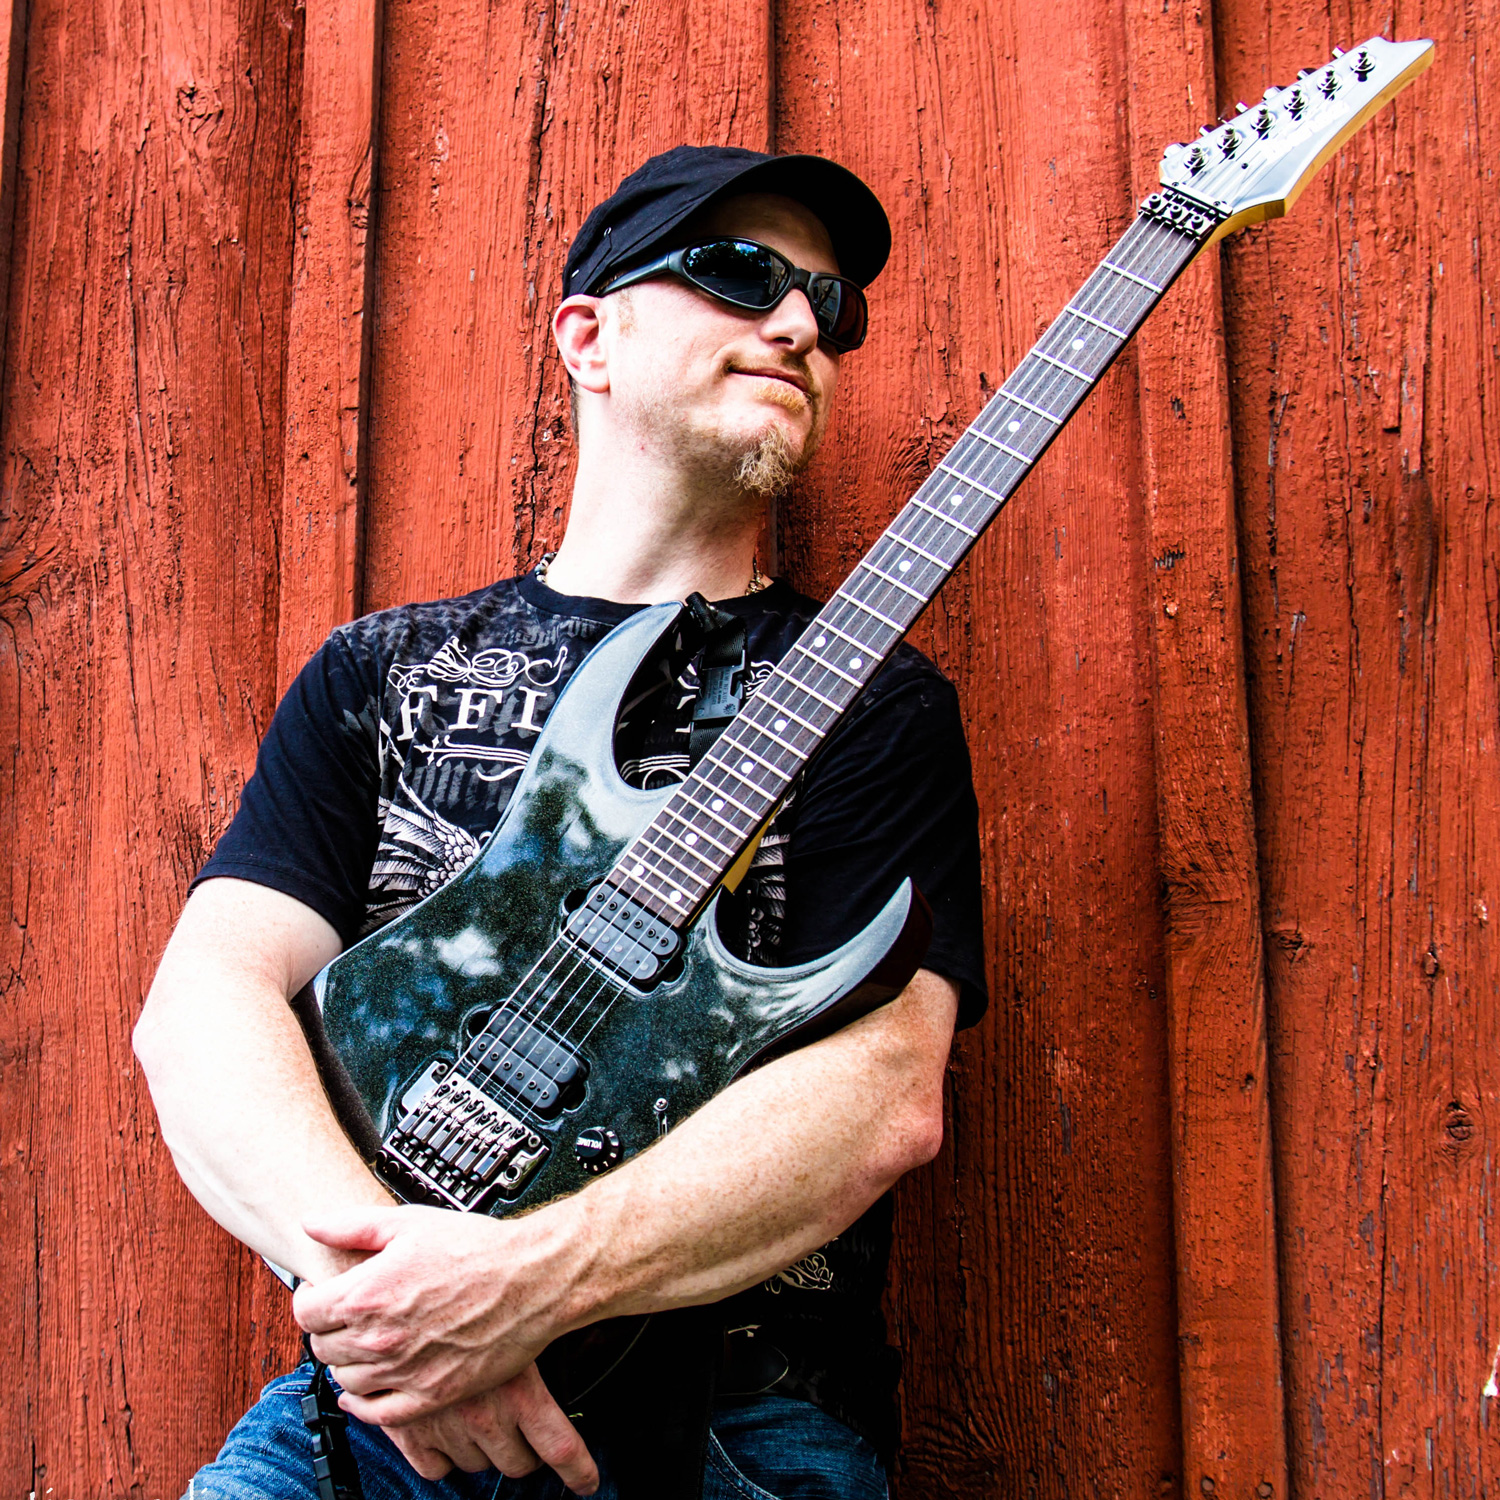 Tom Martini plays DiMarzio